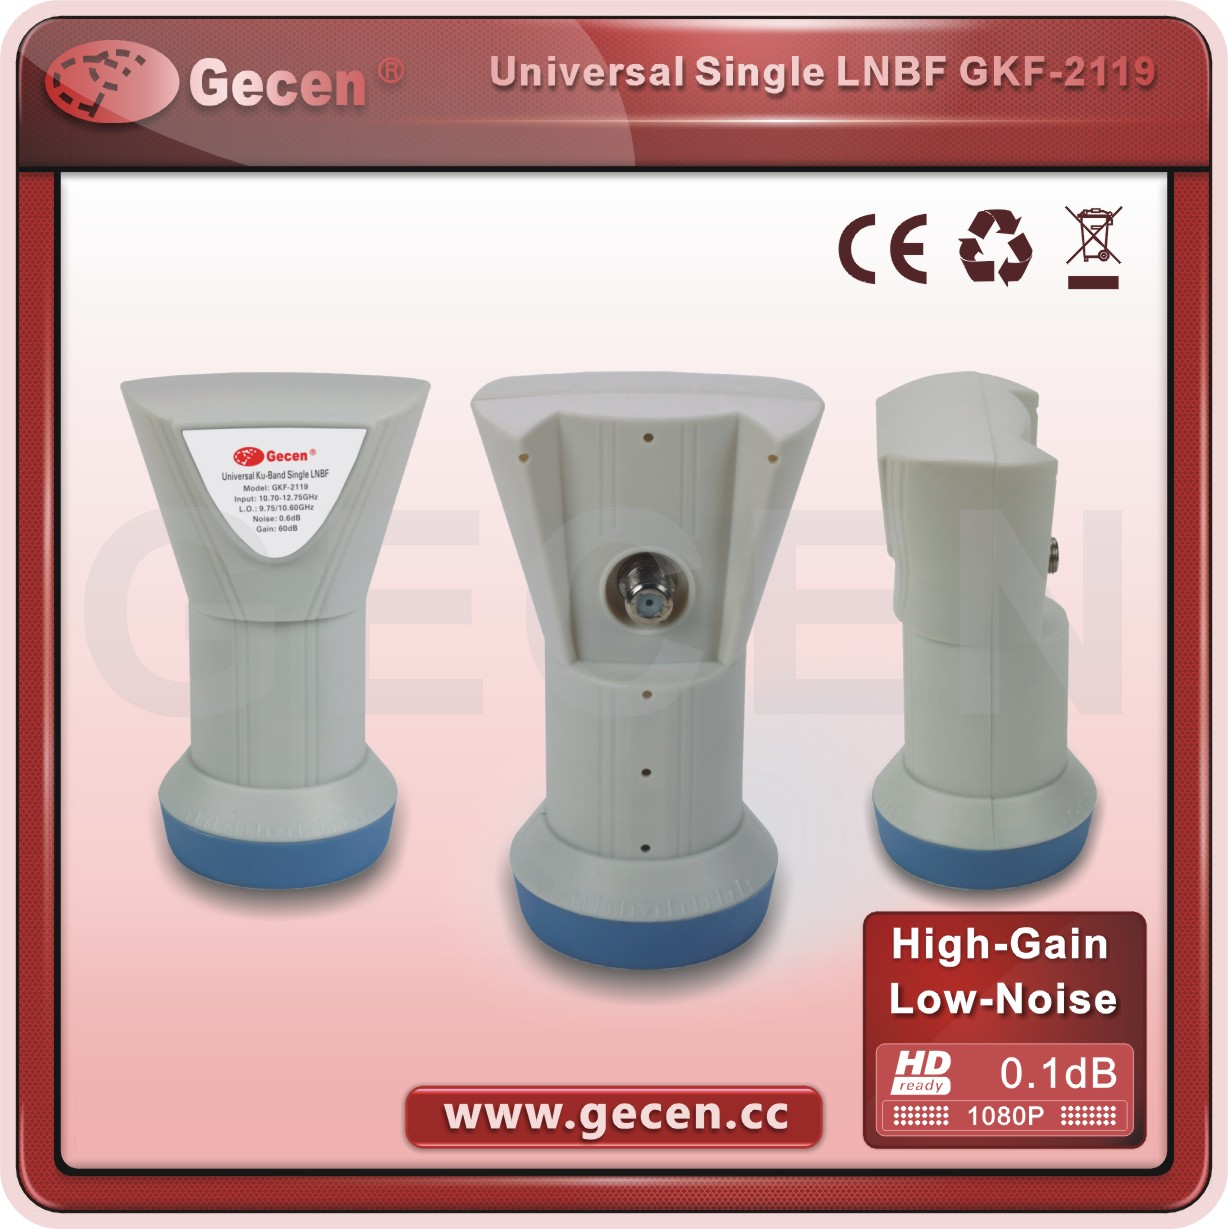 2016 Gecen Universal Ku-Band Single LNBF Model GKF-2119